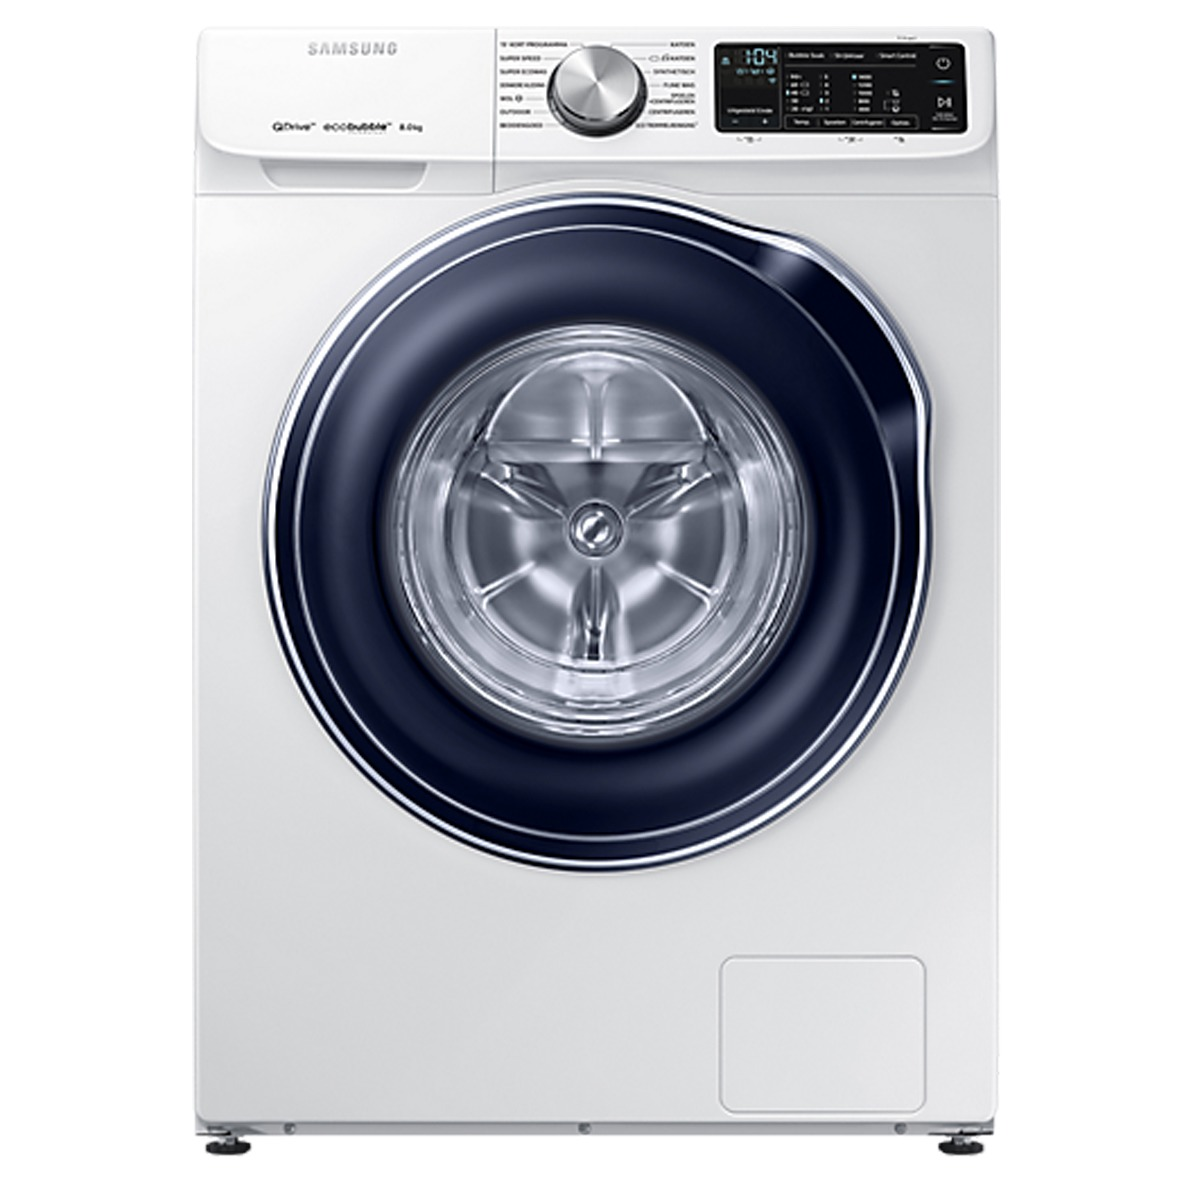 Samsung WW8BM642OBW QuickDrive Wasmachine Wit